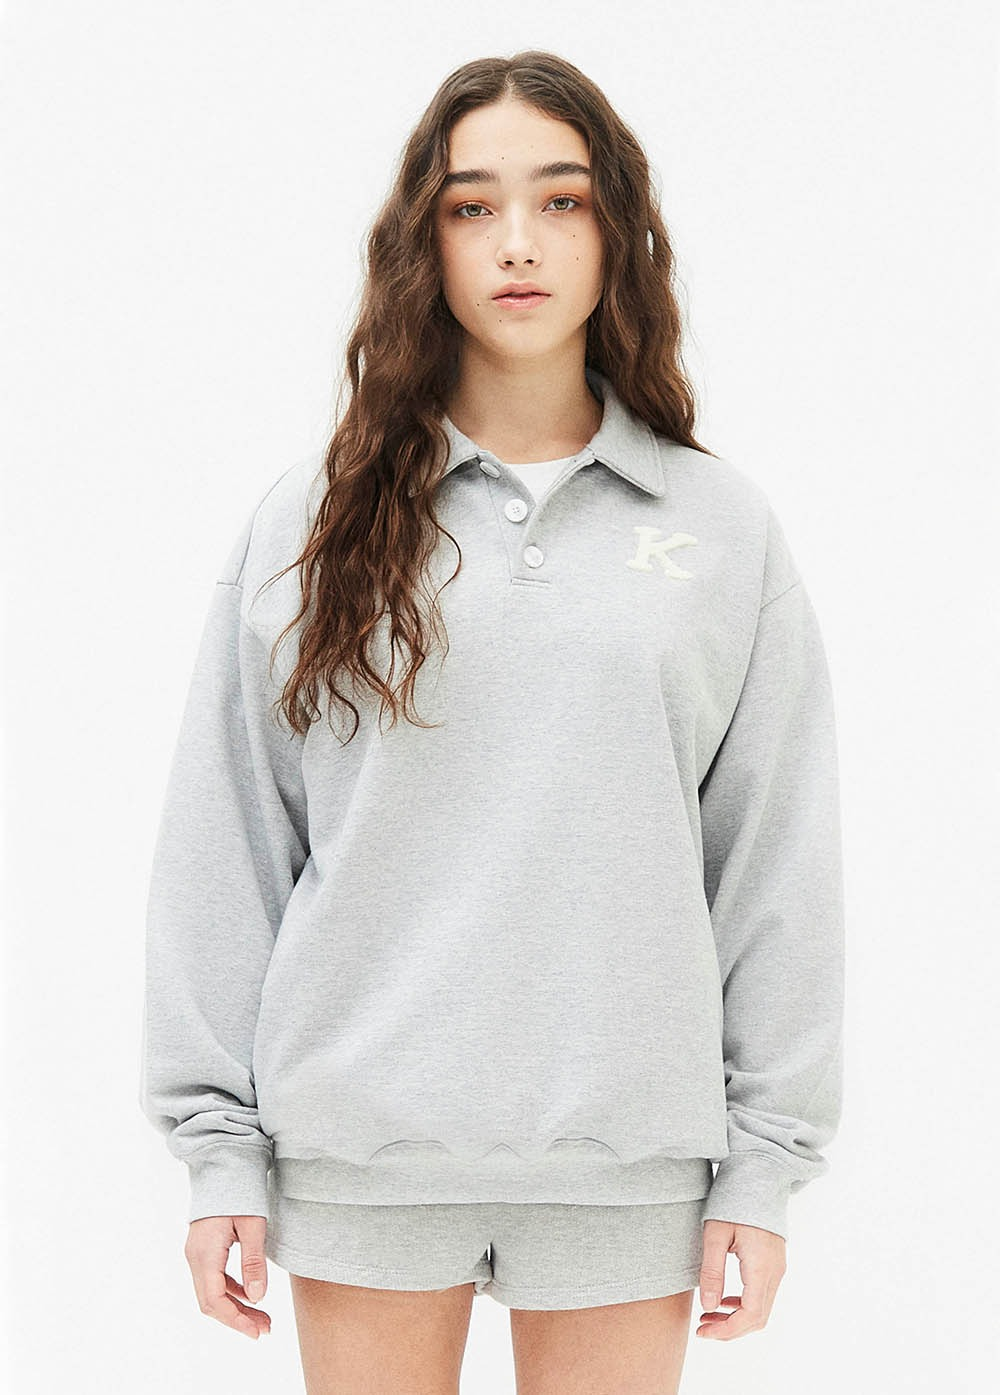 KANCO COLLAR SWEATSHIRT heather gray